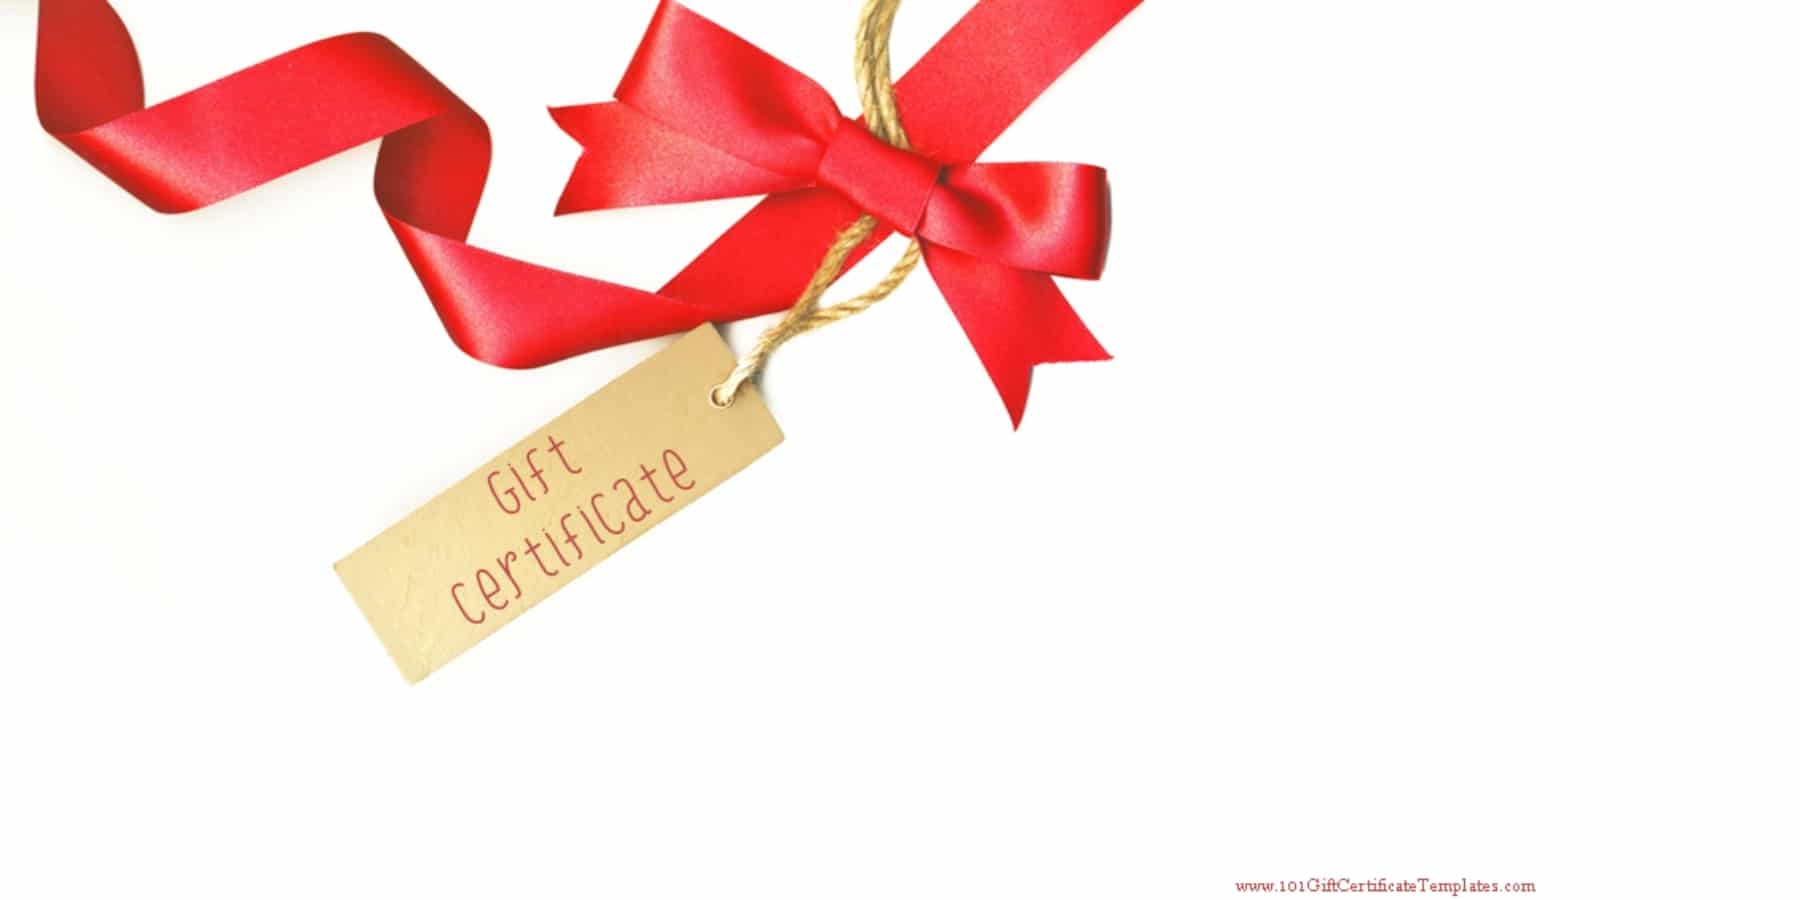 Gift Card Which Can Be Customized In Any Way With Our Gift Card Maker  Gift Certificate Template Free Word